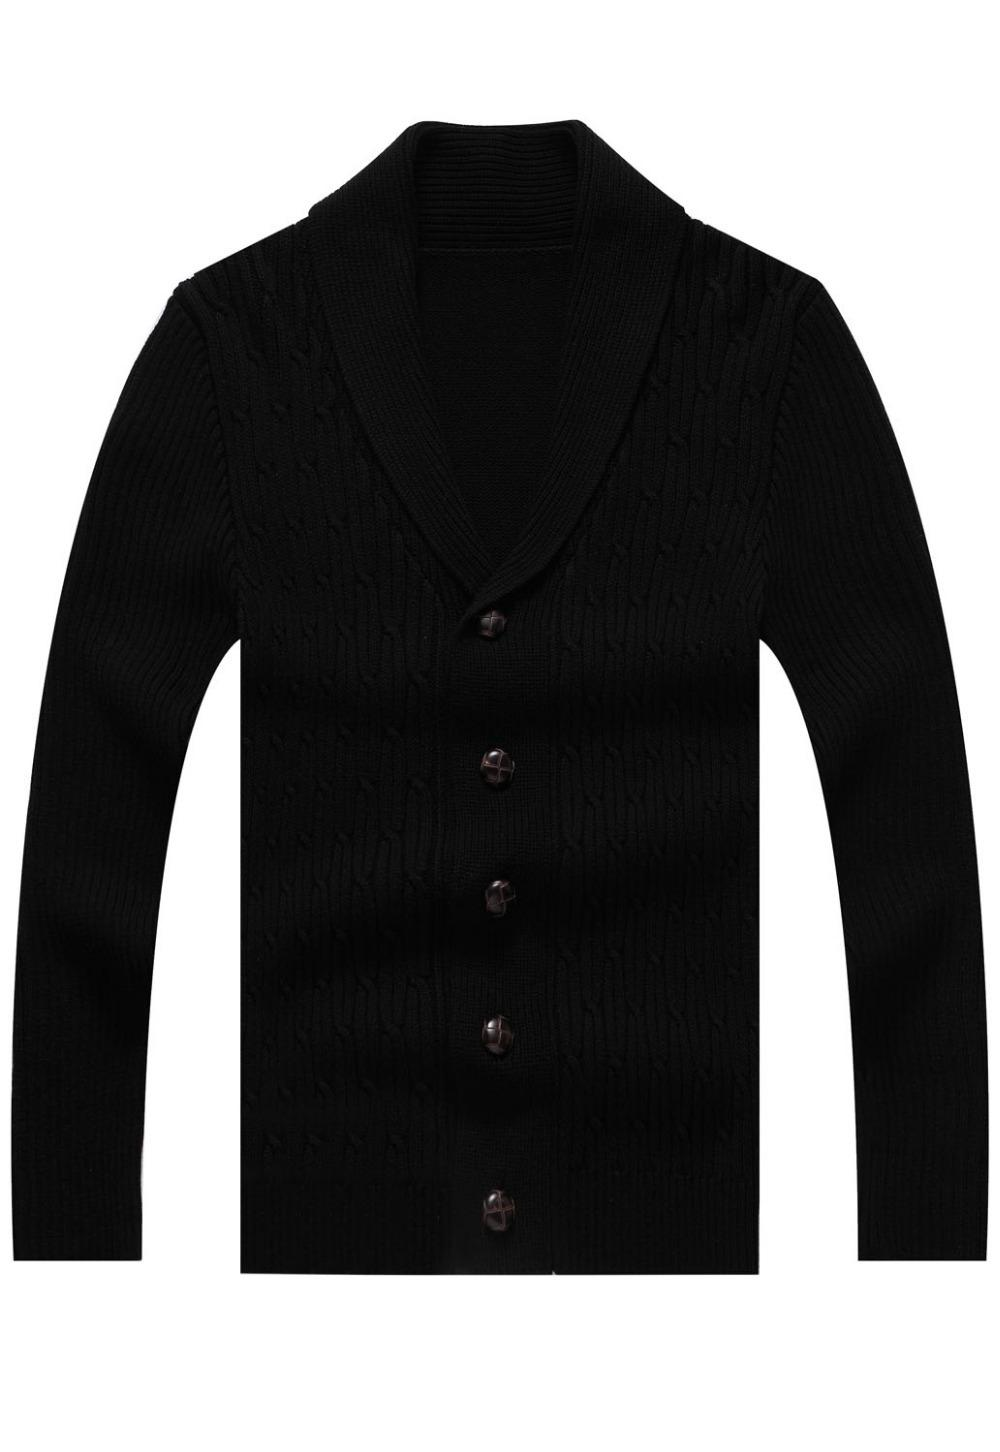 Black Cardigans For Men